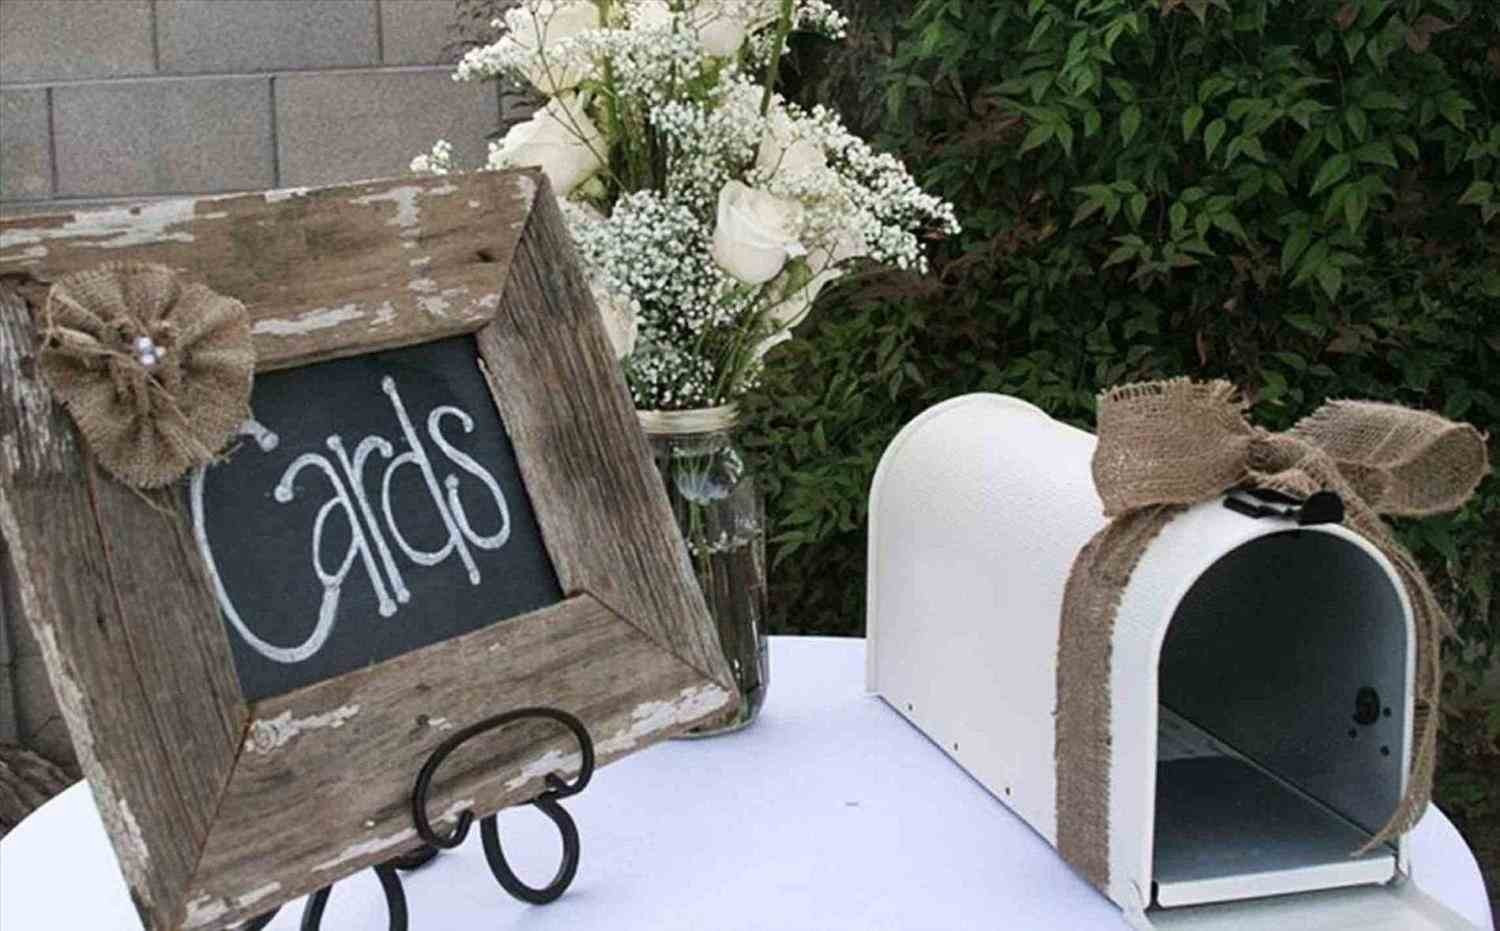 Best ideas about Wedding Gift Ideas For Older Couples . Save or Pin 20 Elegant Wedding Gift Ideas for Older Couples Now.